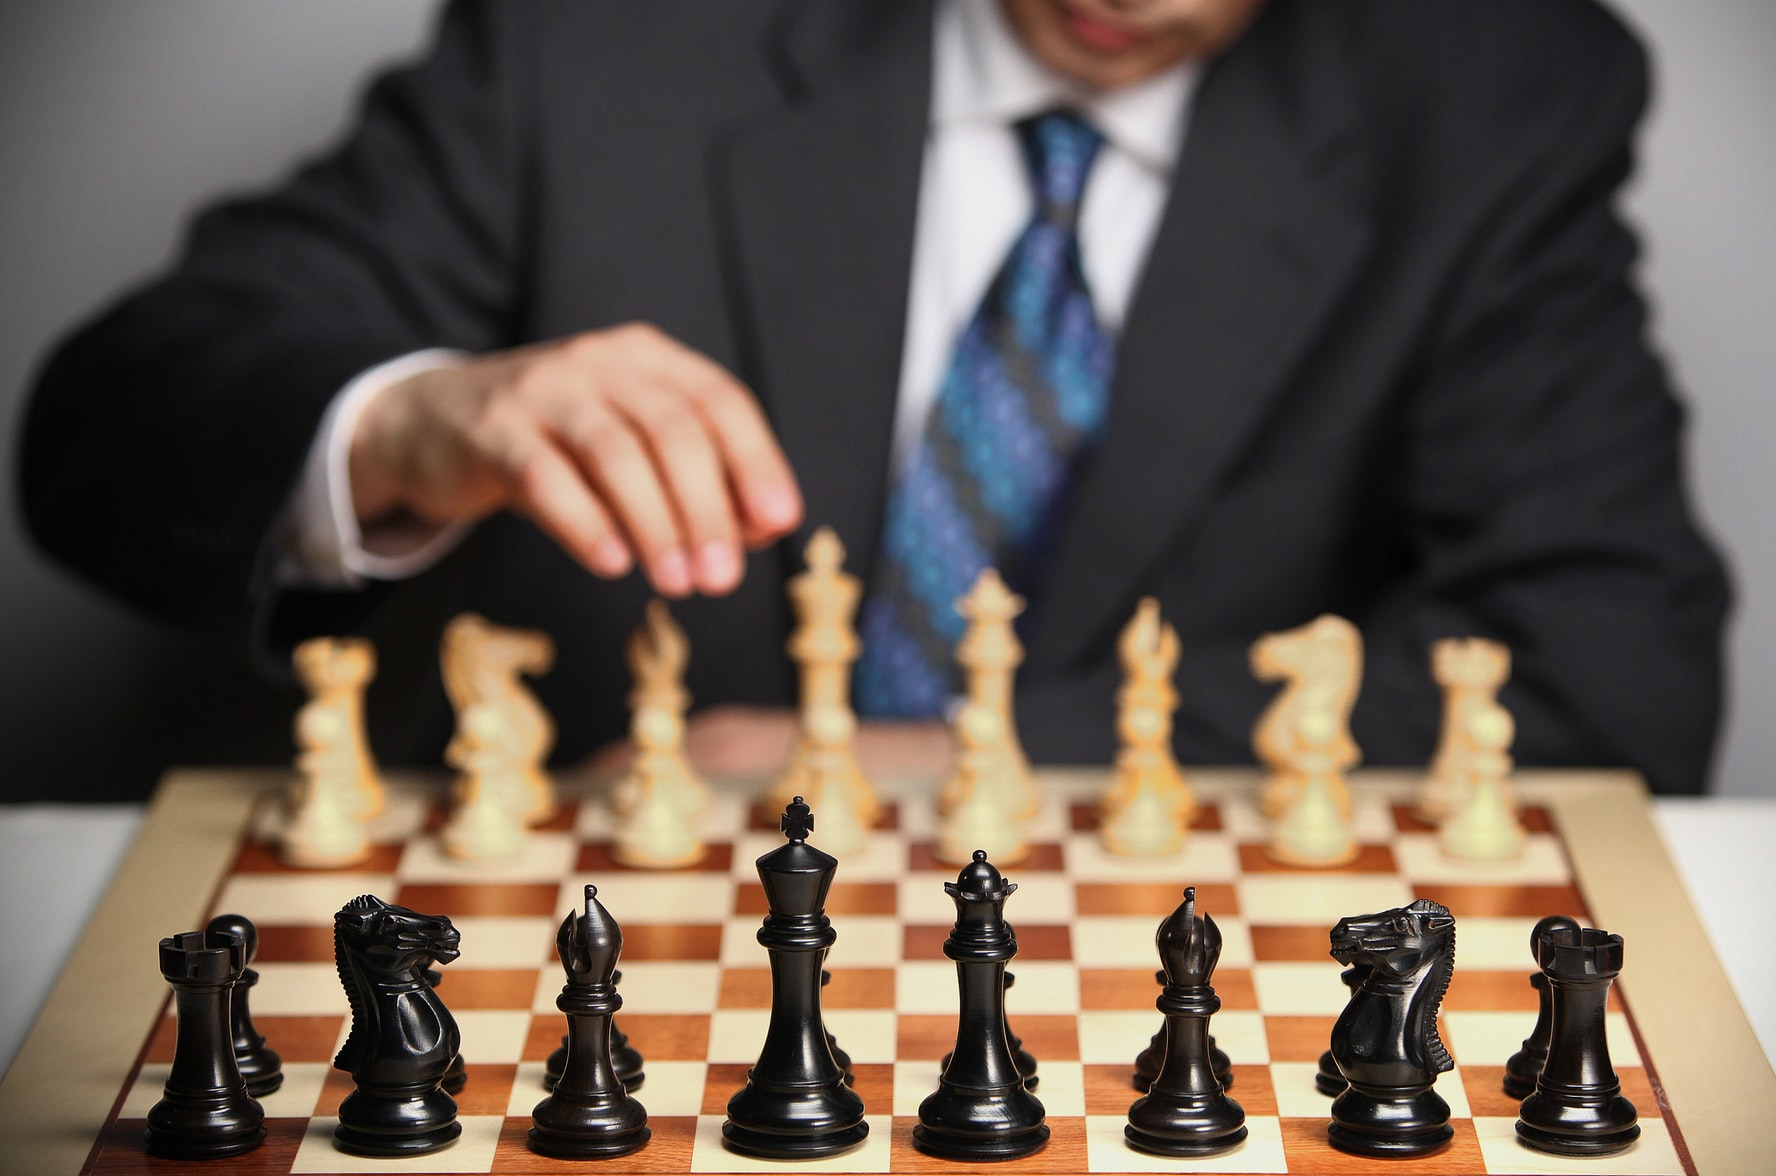 A man plays chess, the classic strategy game. Candidate attraction relies on a robust strategy.